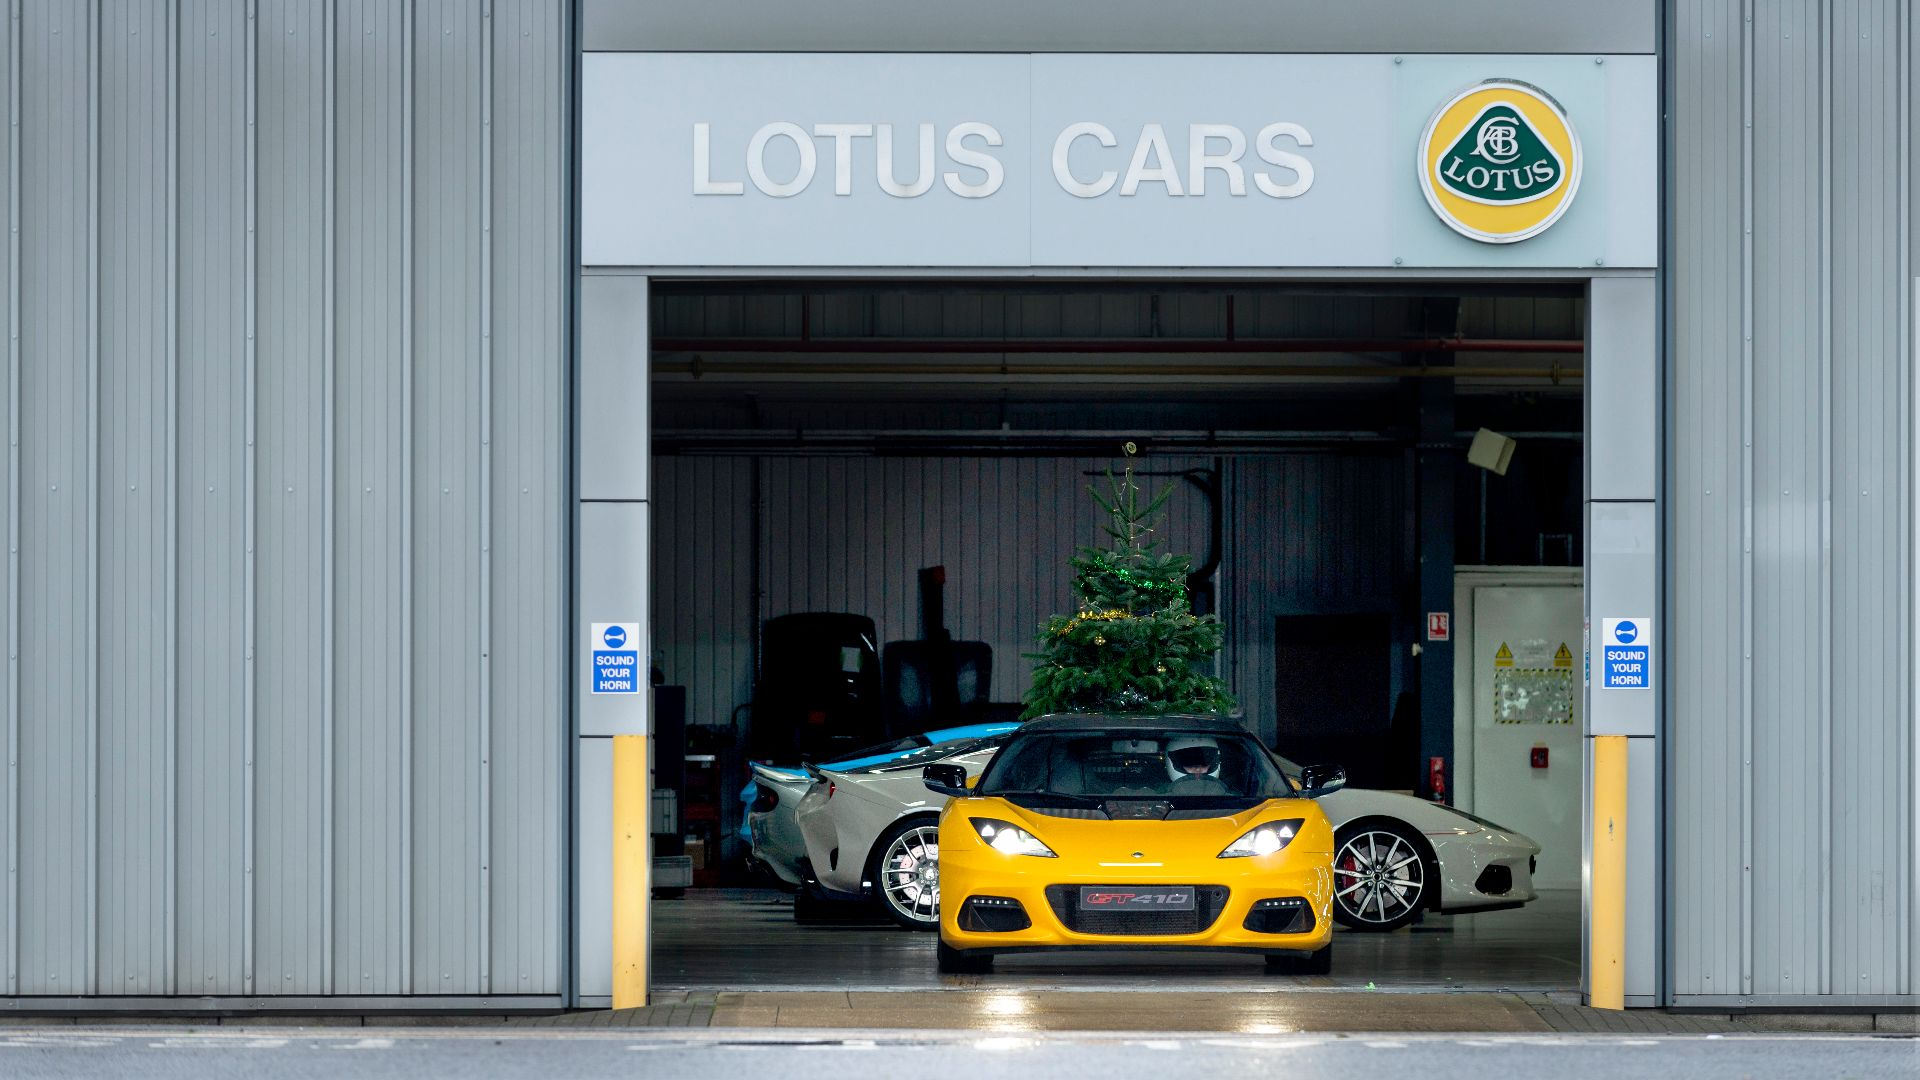 #DriftmasEvora Lotus GT410 Sport lines up outside #HandmadeinHethel factory before burning off sideways for #MerryDriftmas video